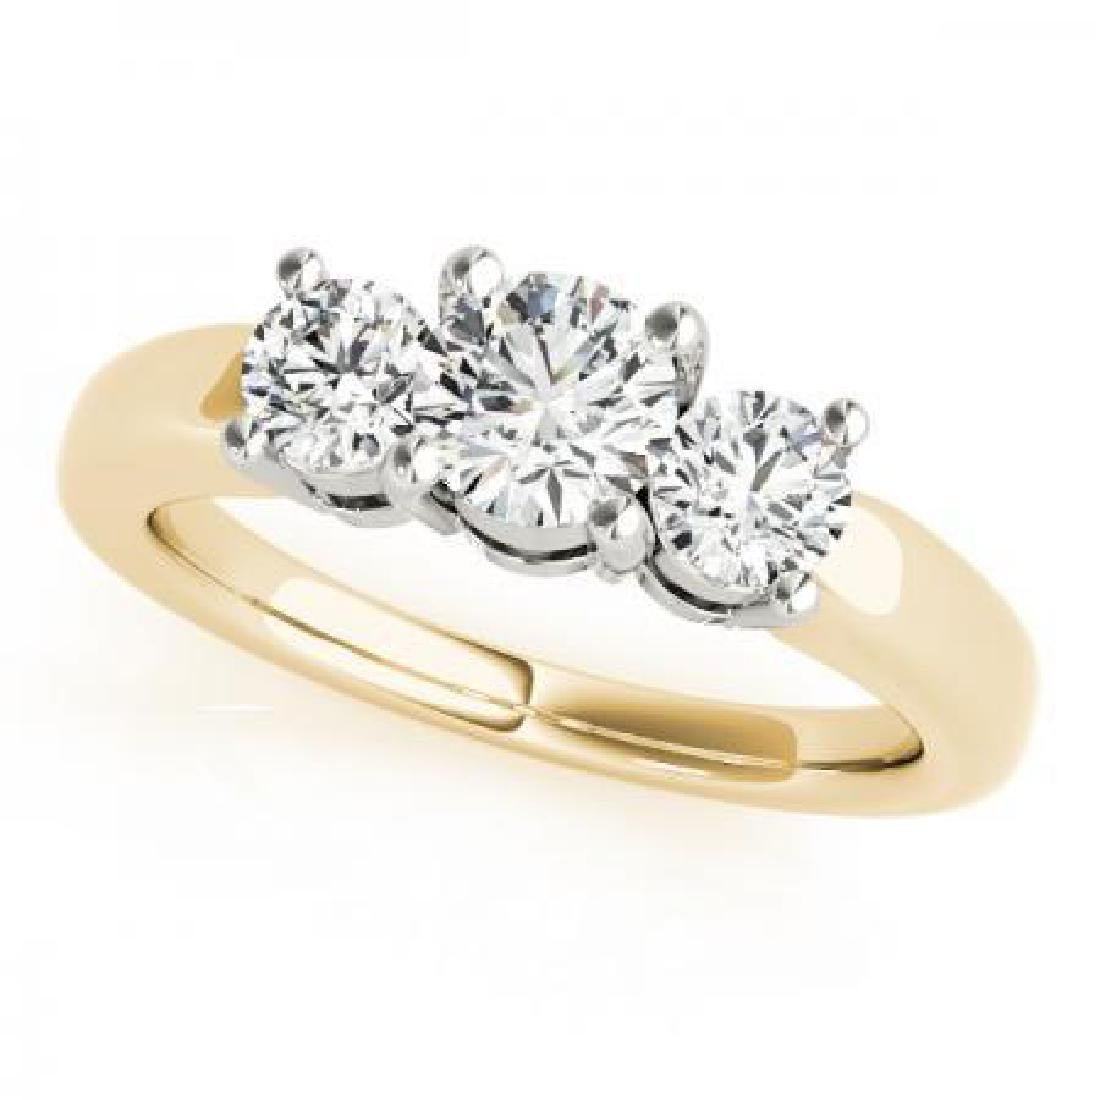 CERTIFIED 18KT TWO TONE GOLD 2.25 CT G-H/VS-SI1 DIAMOND